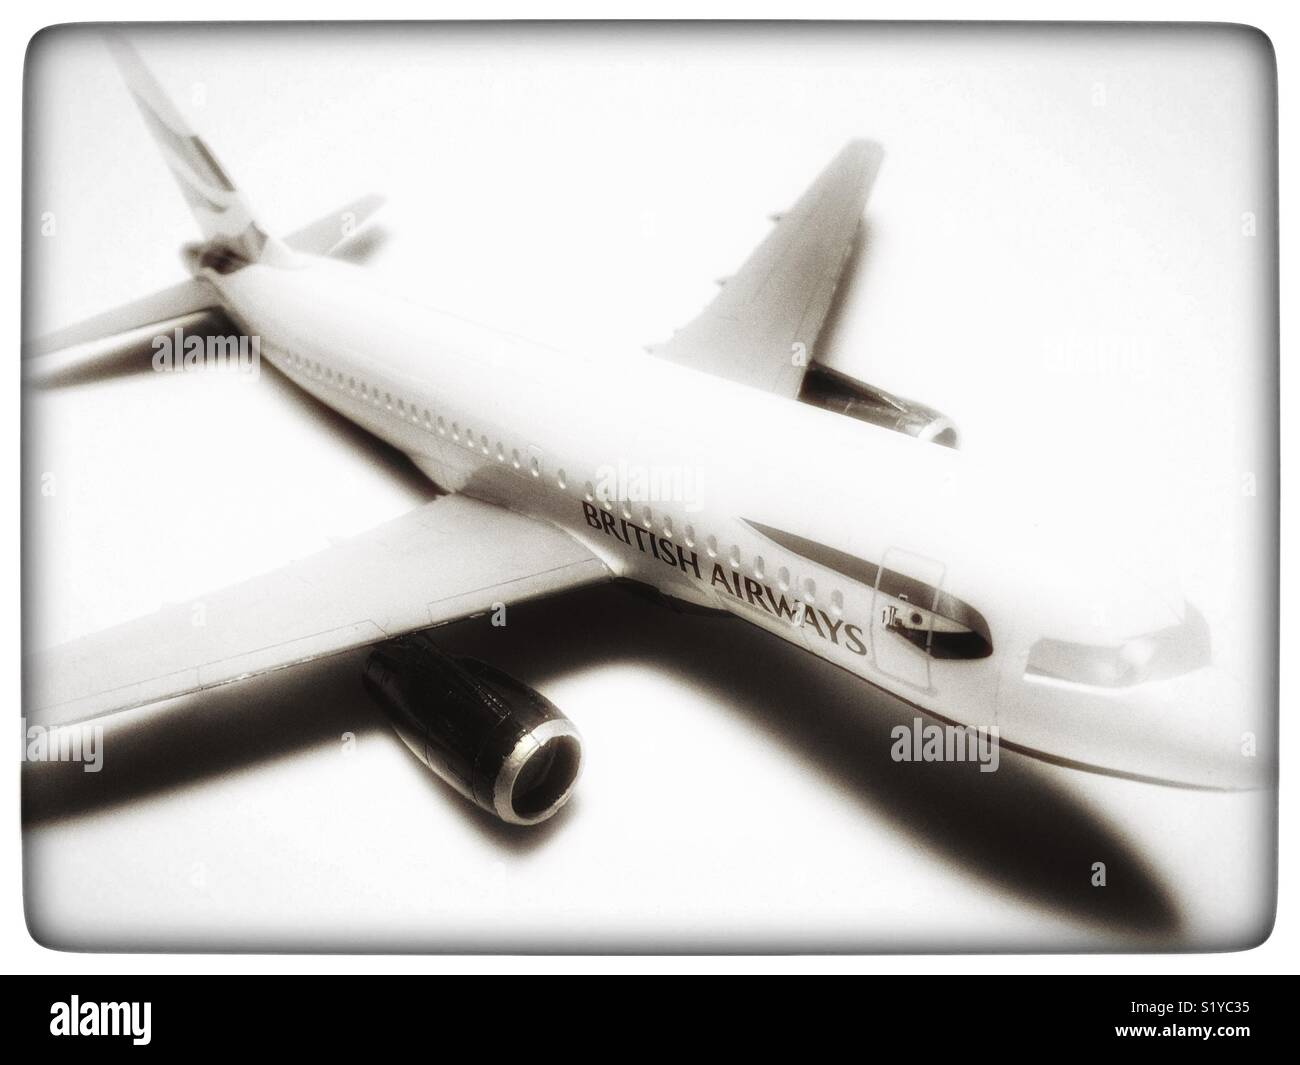 British Airways Airbus A319 model aircraft - Stock Image